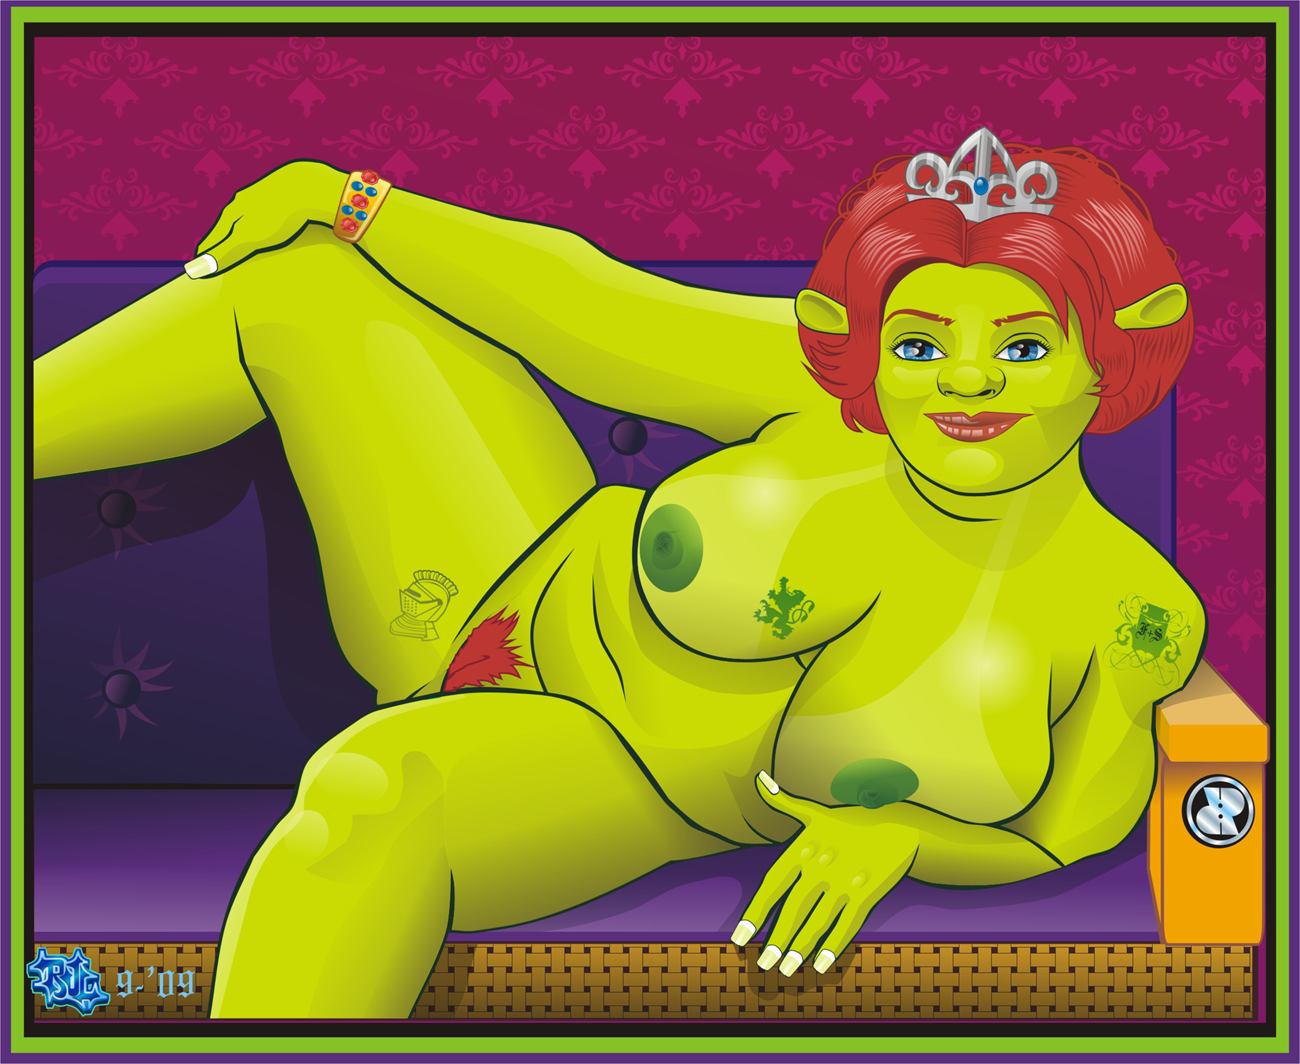 Shrek gif porno 3d sex photos